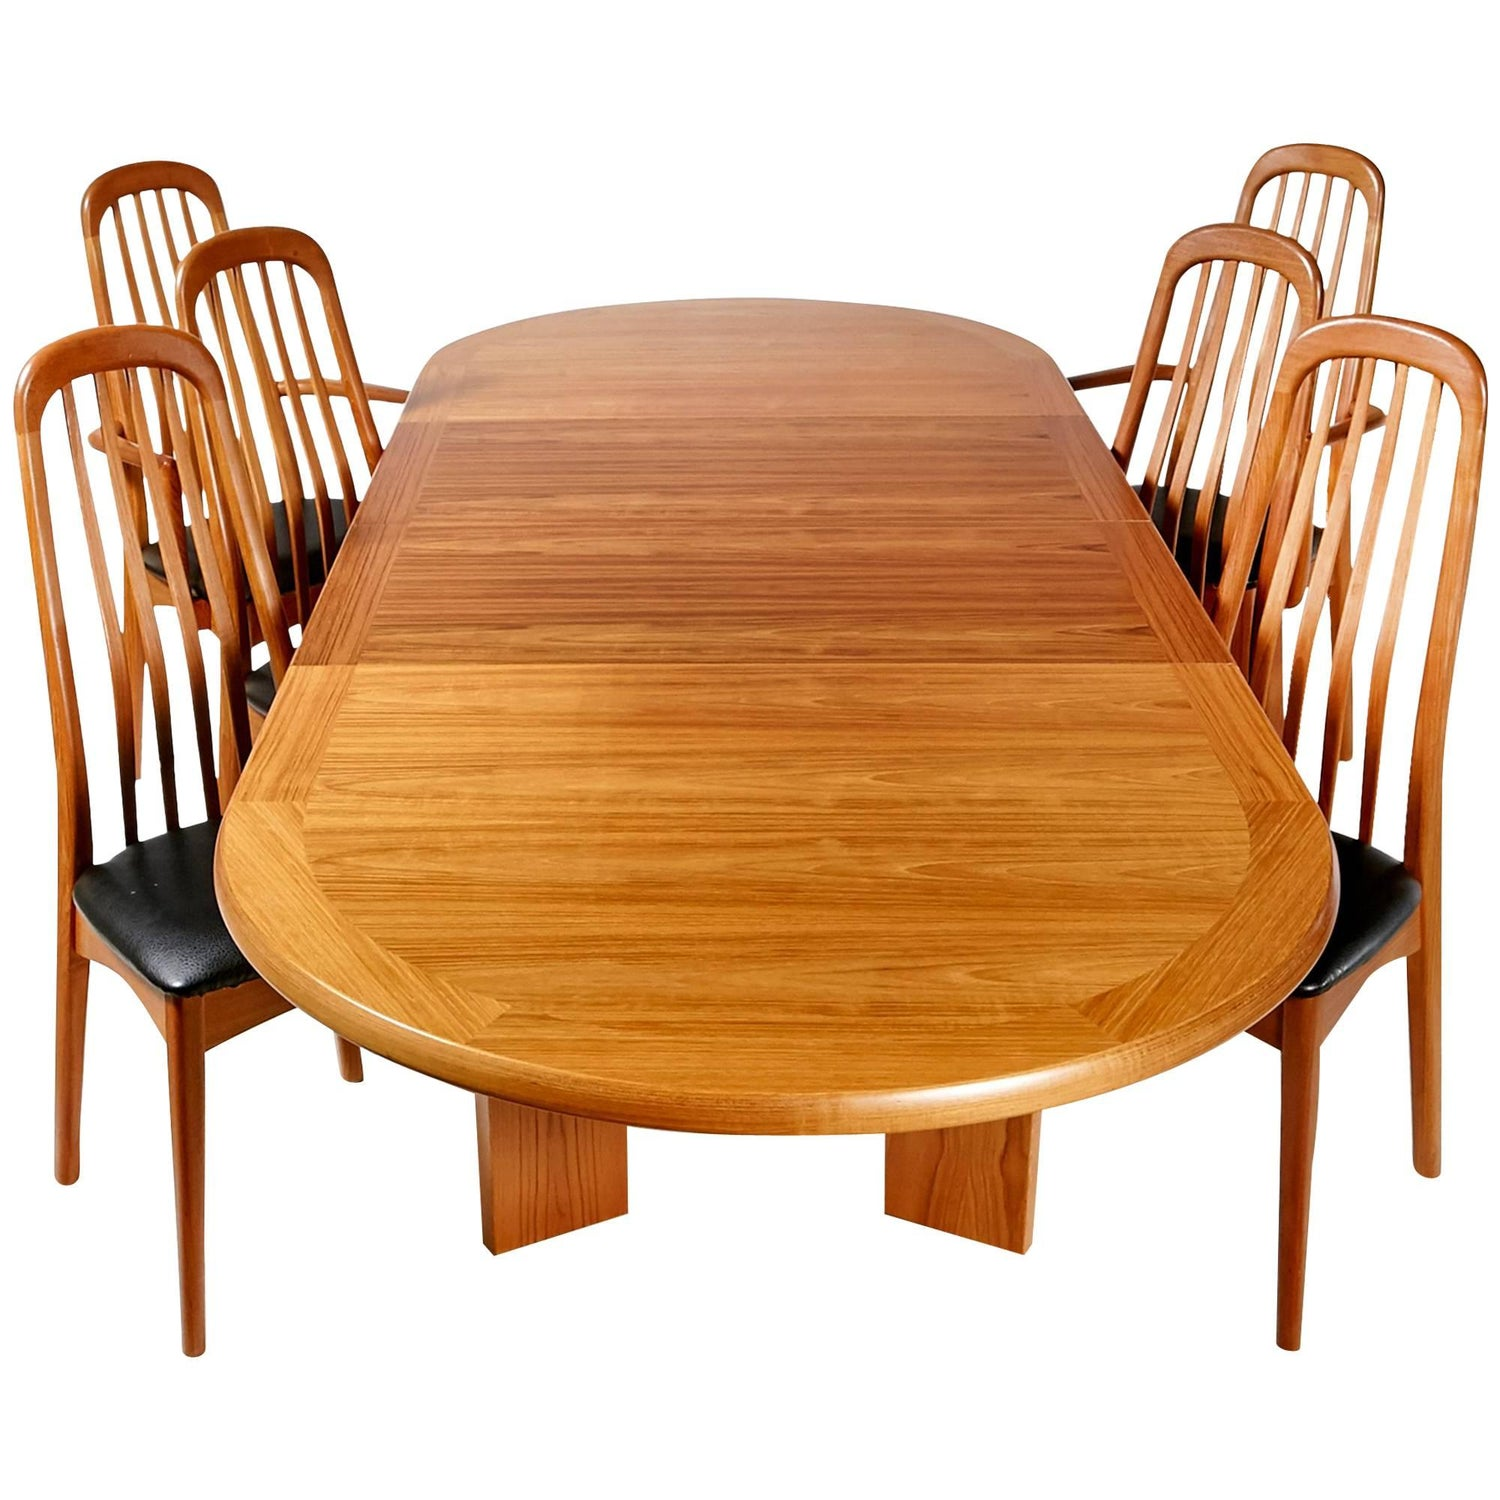 Teak Dining Room Table And Chairs Choice Image